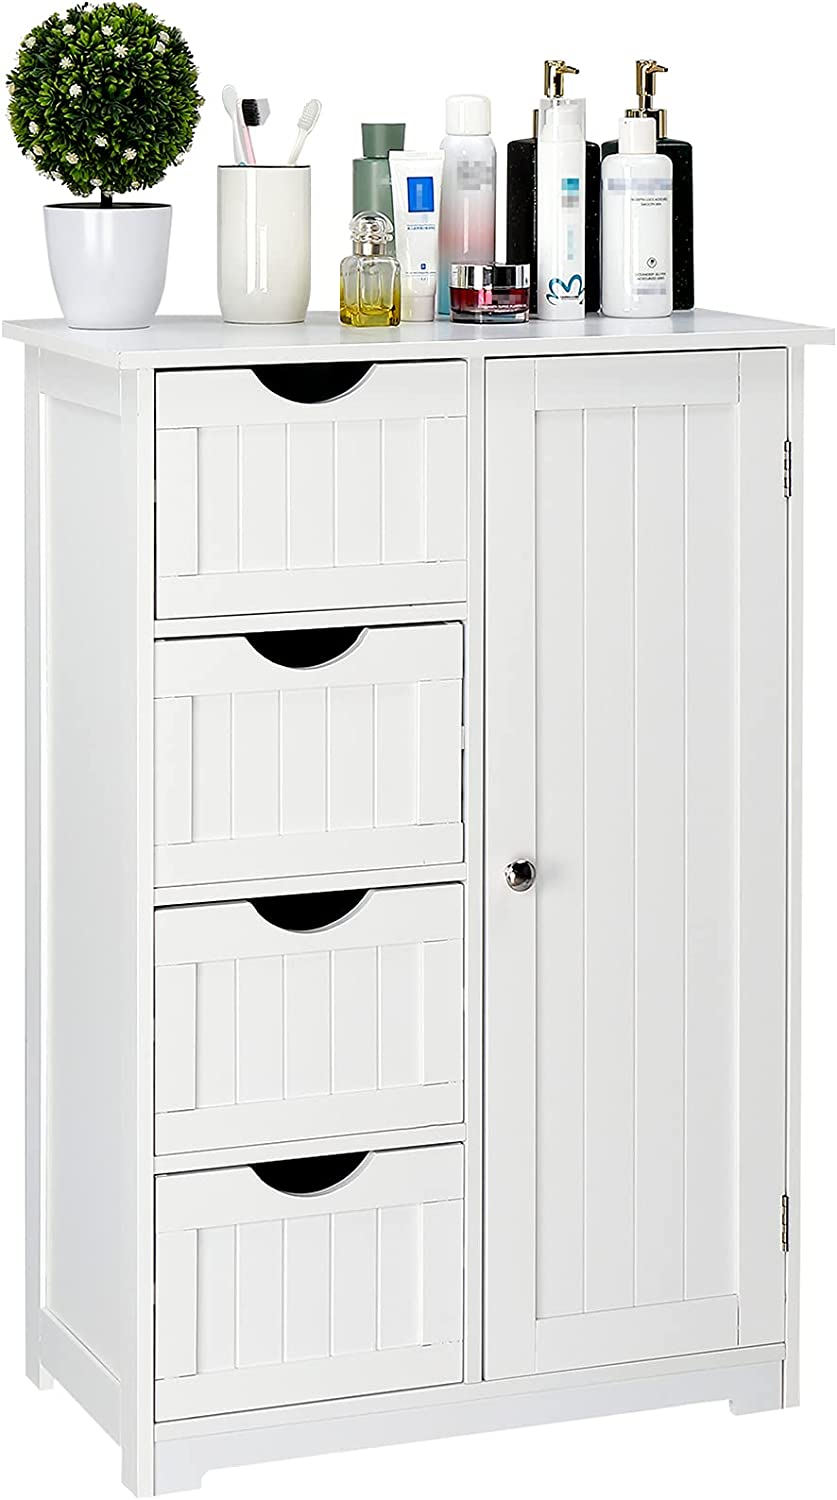 FCH White Storage Cabinet Bathroom Standing Super Wholesale special price Free Cabinets Woode